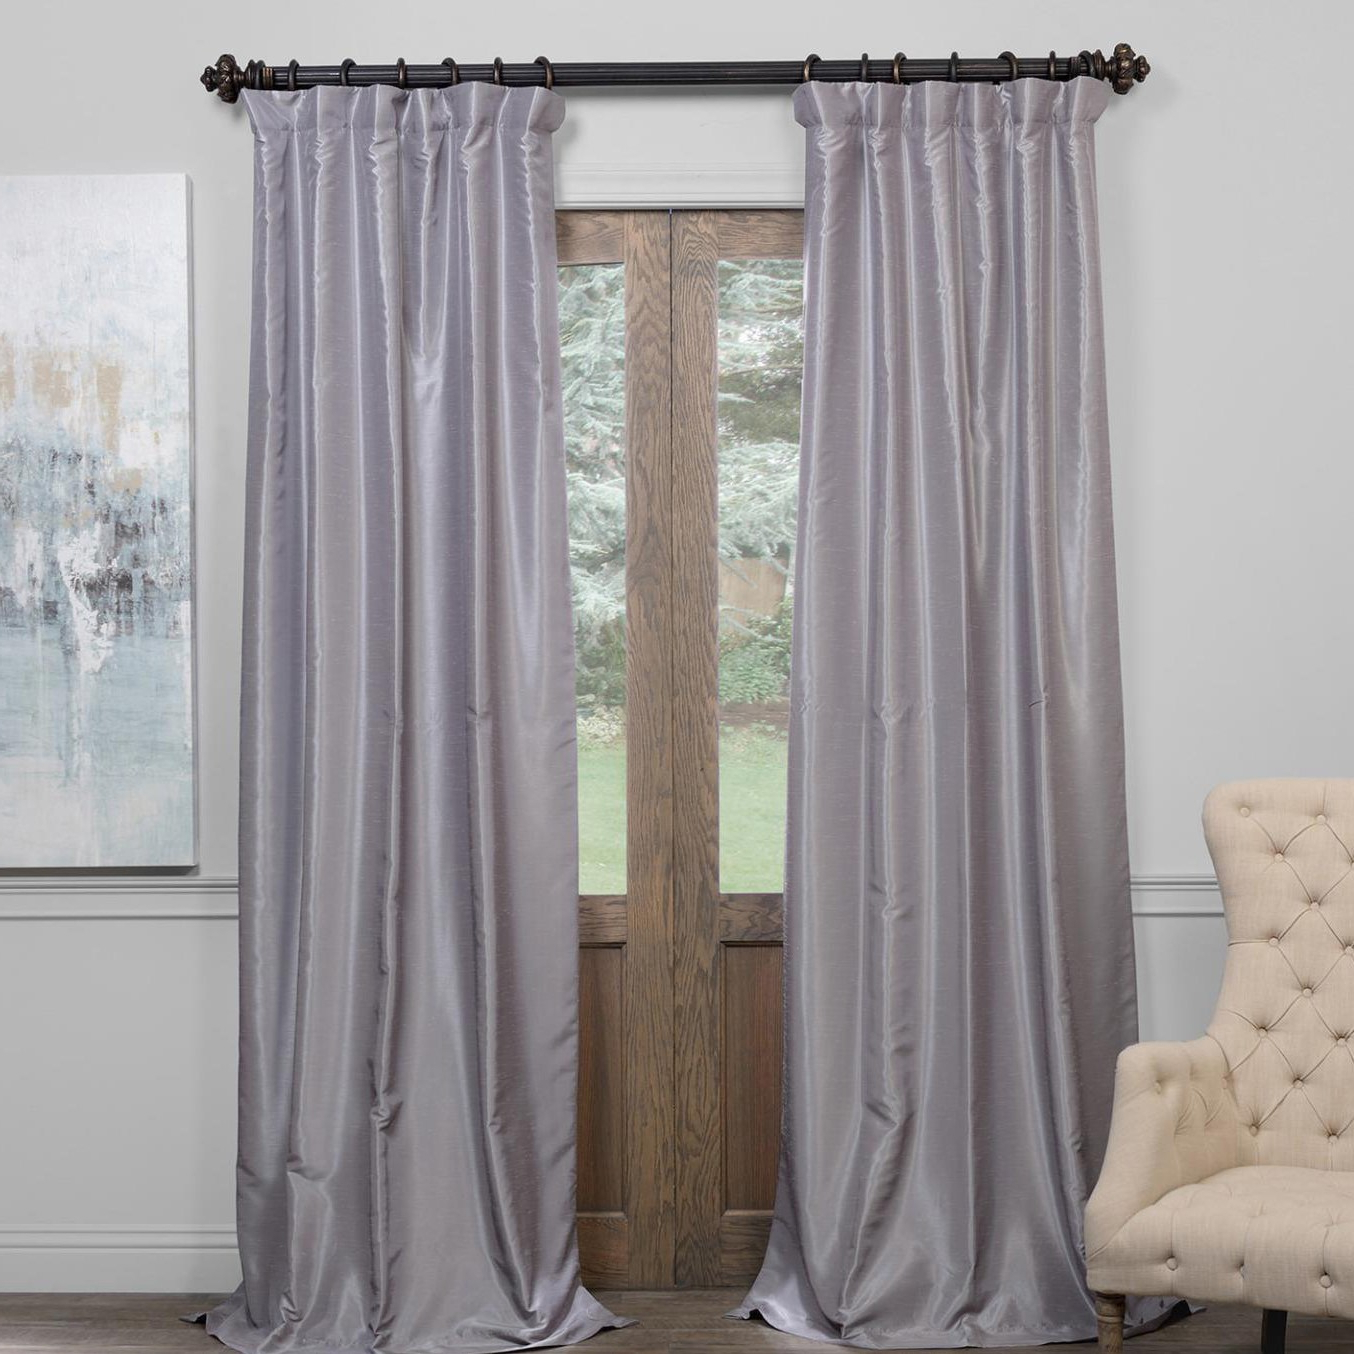 Newest Exclusive Fabrics True Blackout Vintage Textured Faux Dupioni Silk Curtain Panel In True Blackout Vintage Textured Faux Silk Curtain Panels (View 2 of 20)